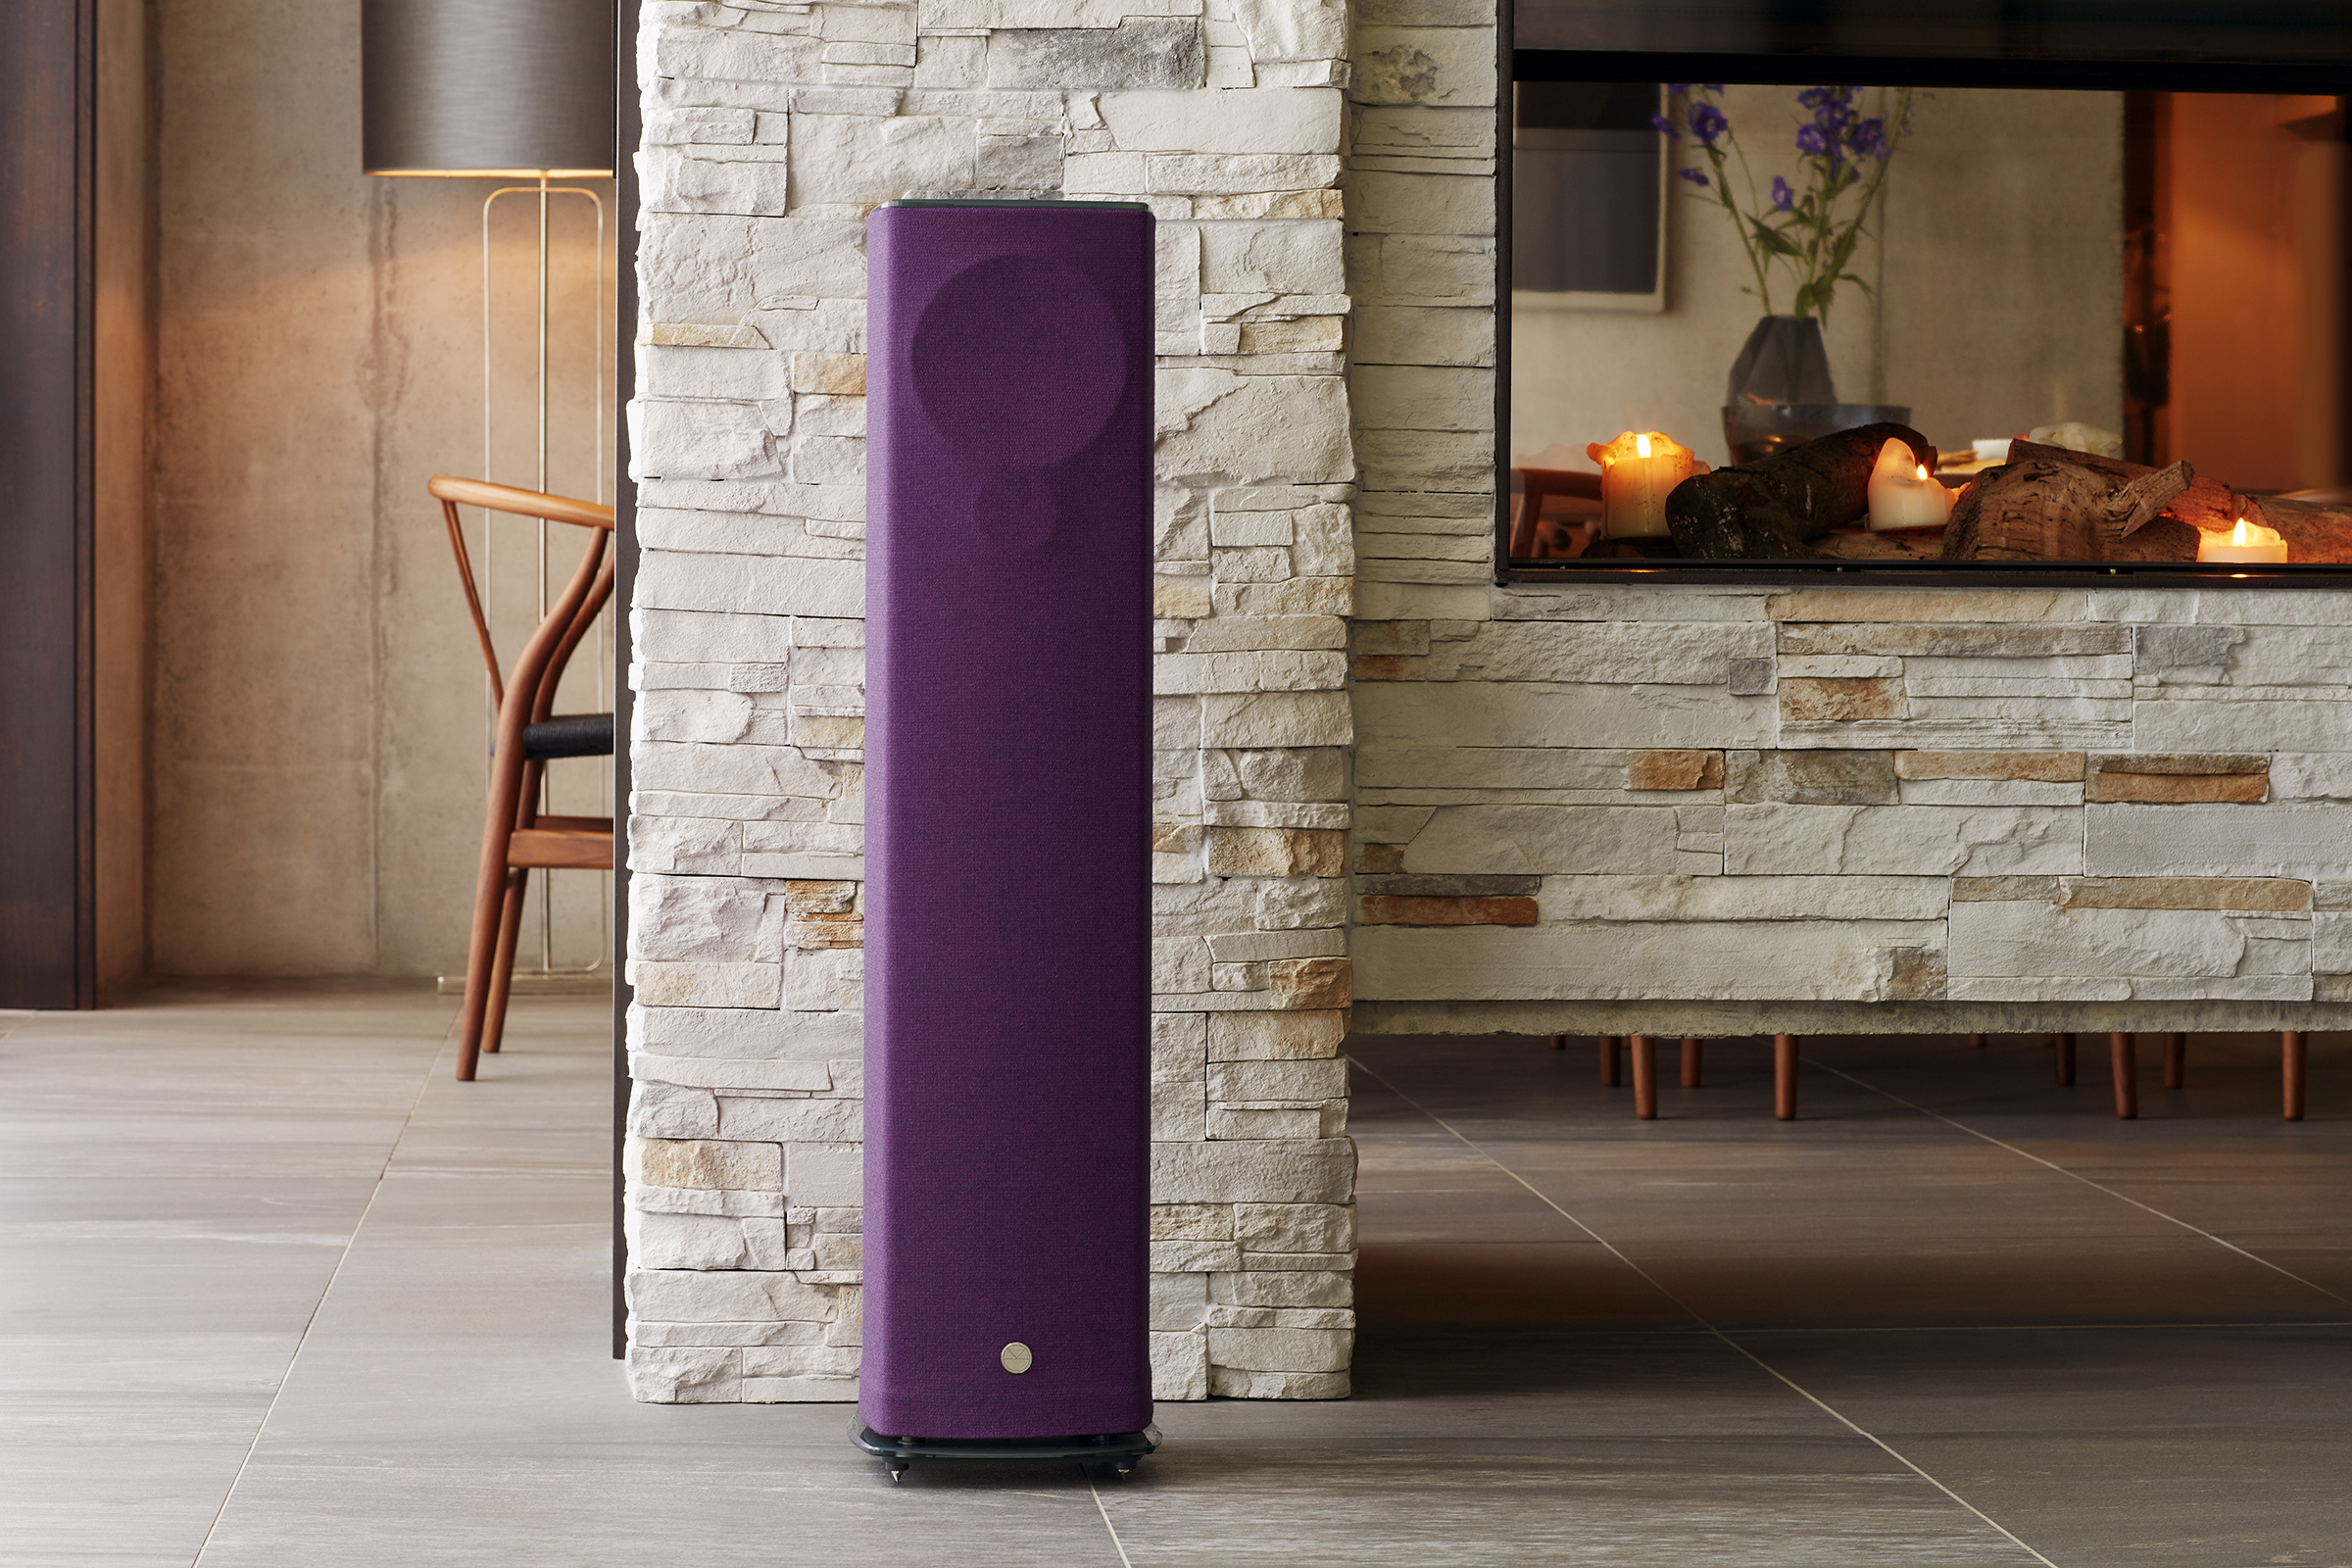 linn-520-aubergine_fireside-close-high-res_300dpi